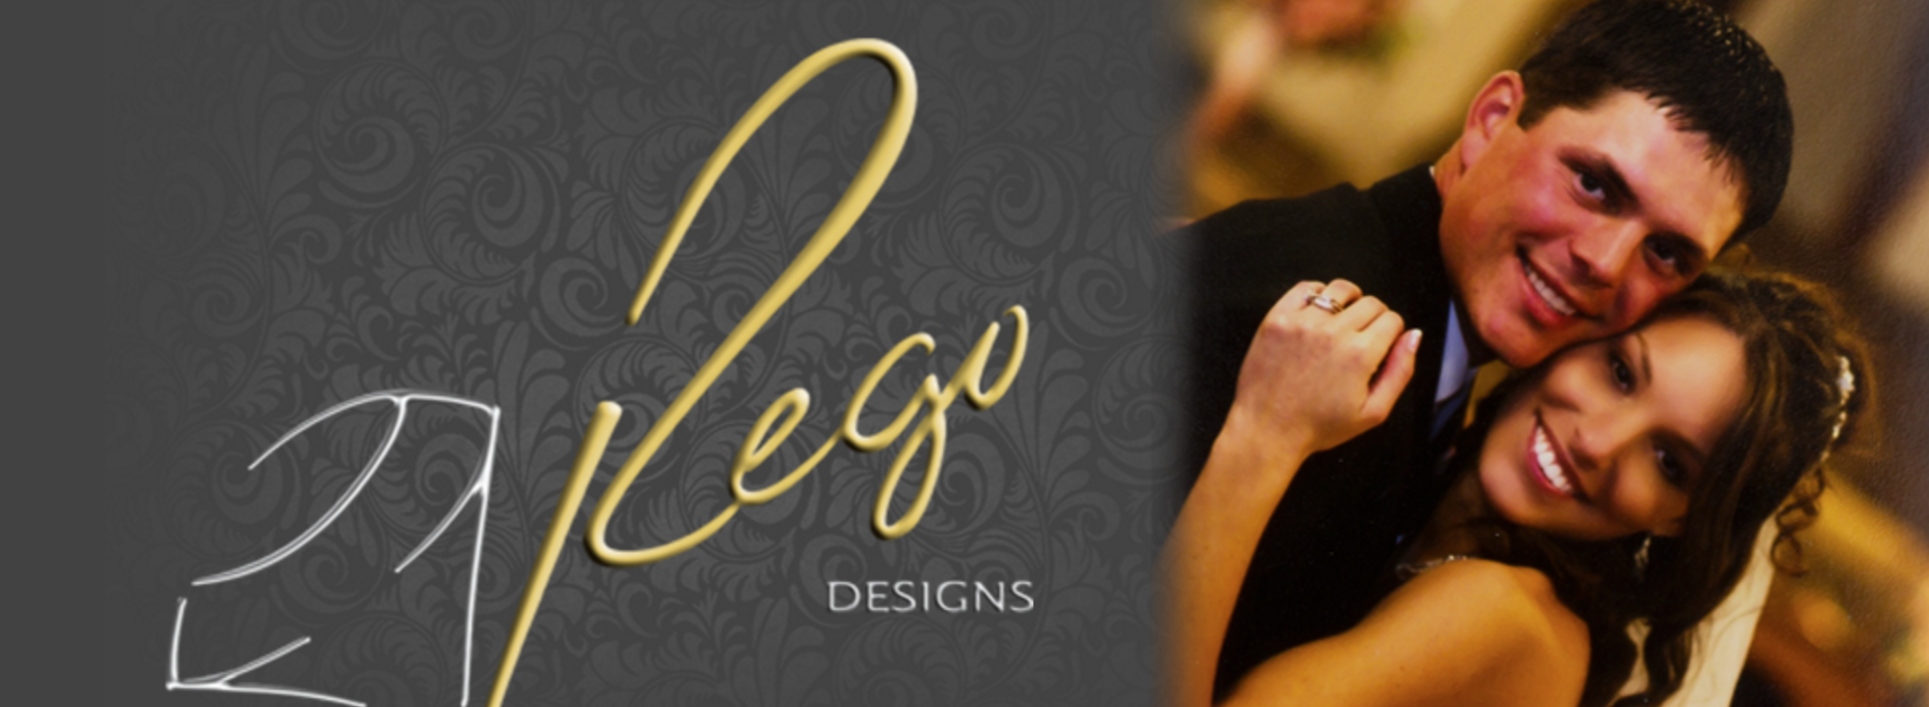 Kramer Jewelers Rego Designs